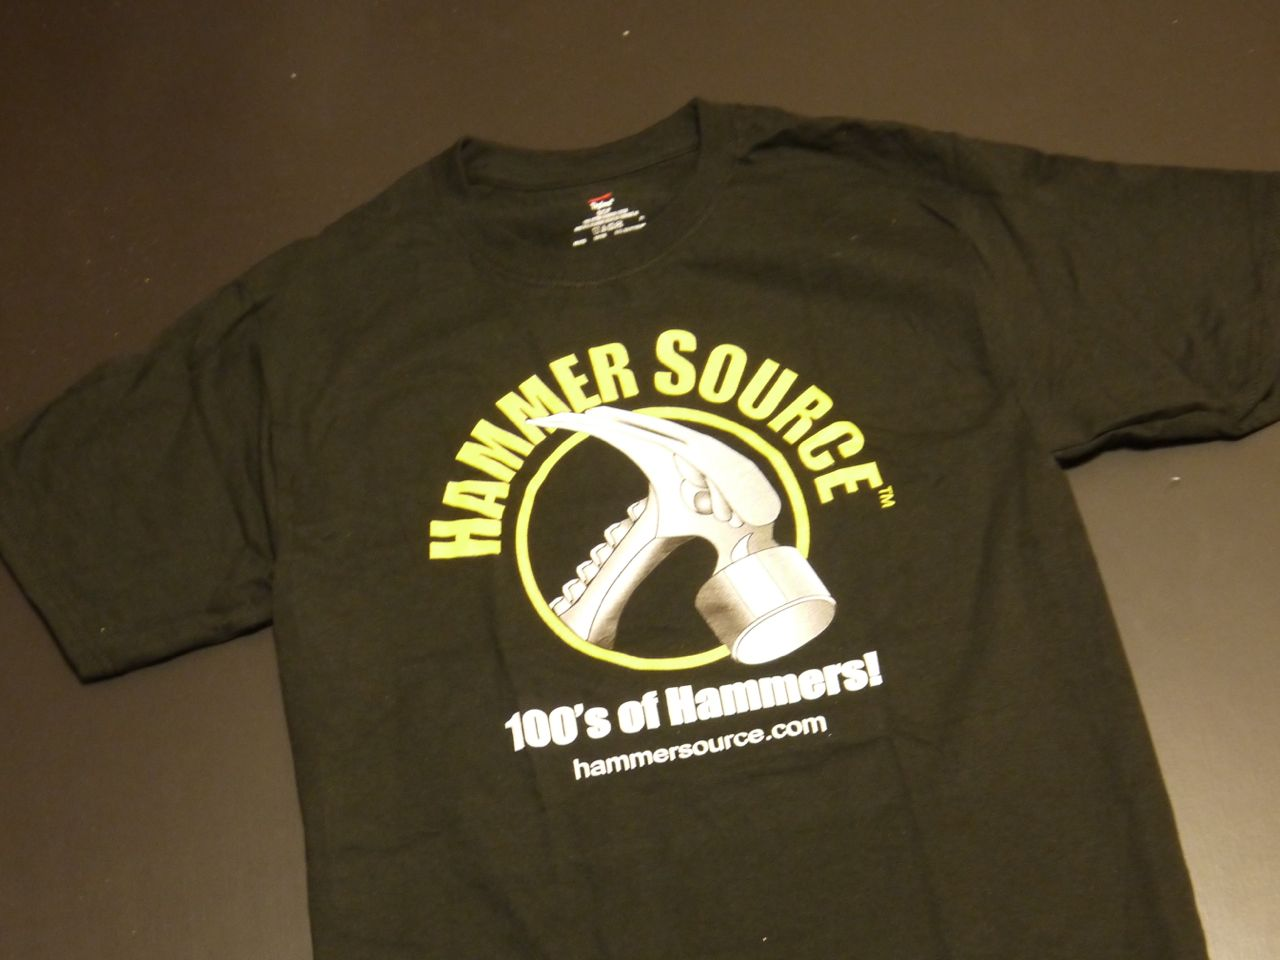 The Hammer Source 100% cotton short-sleeve T